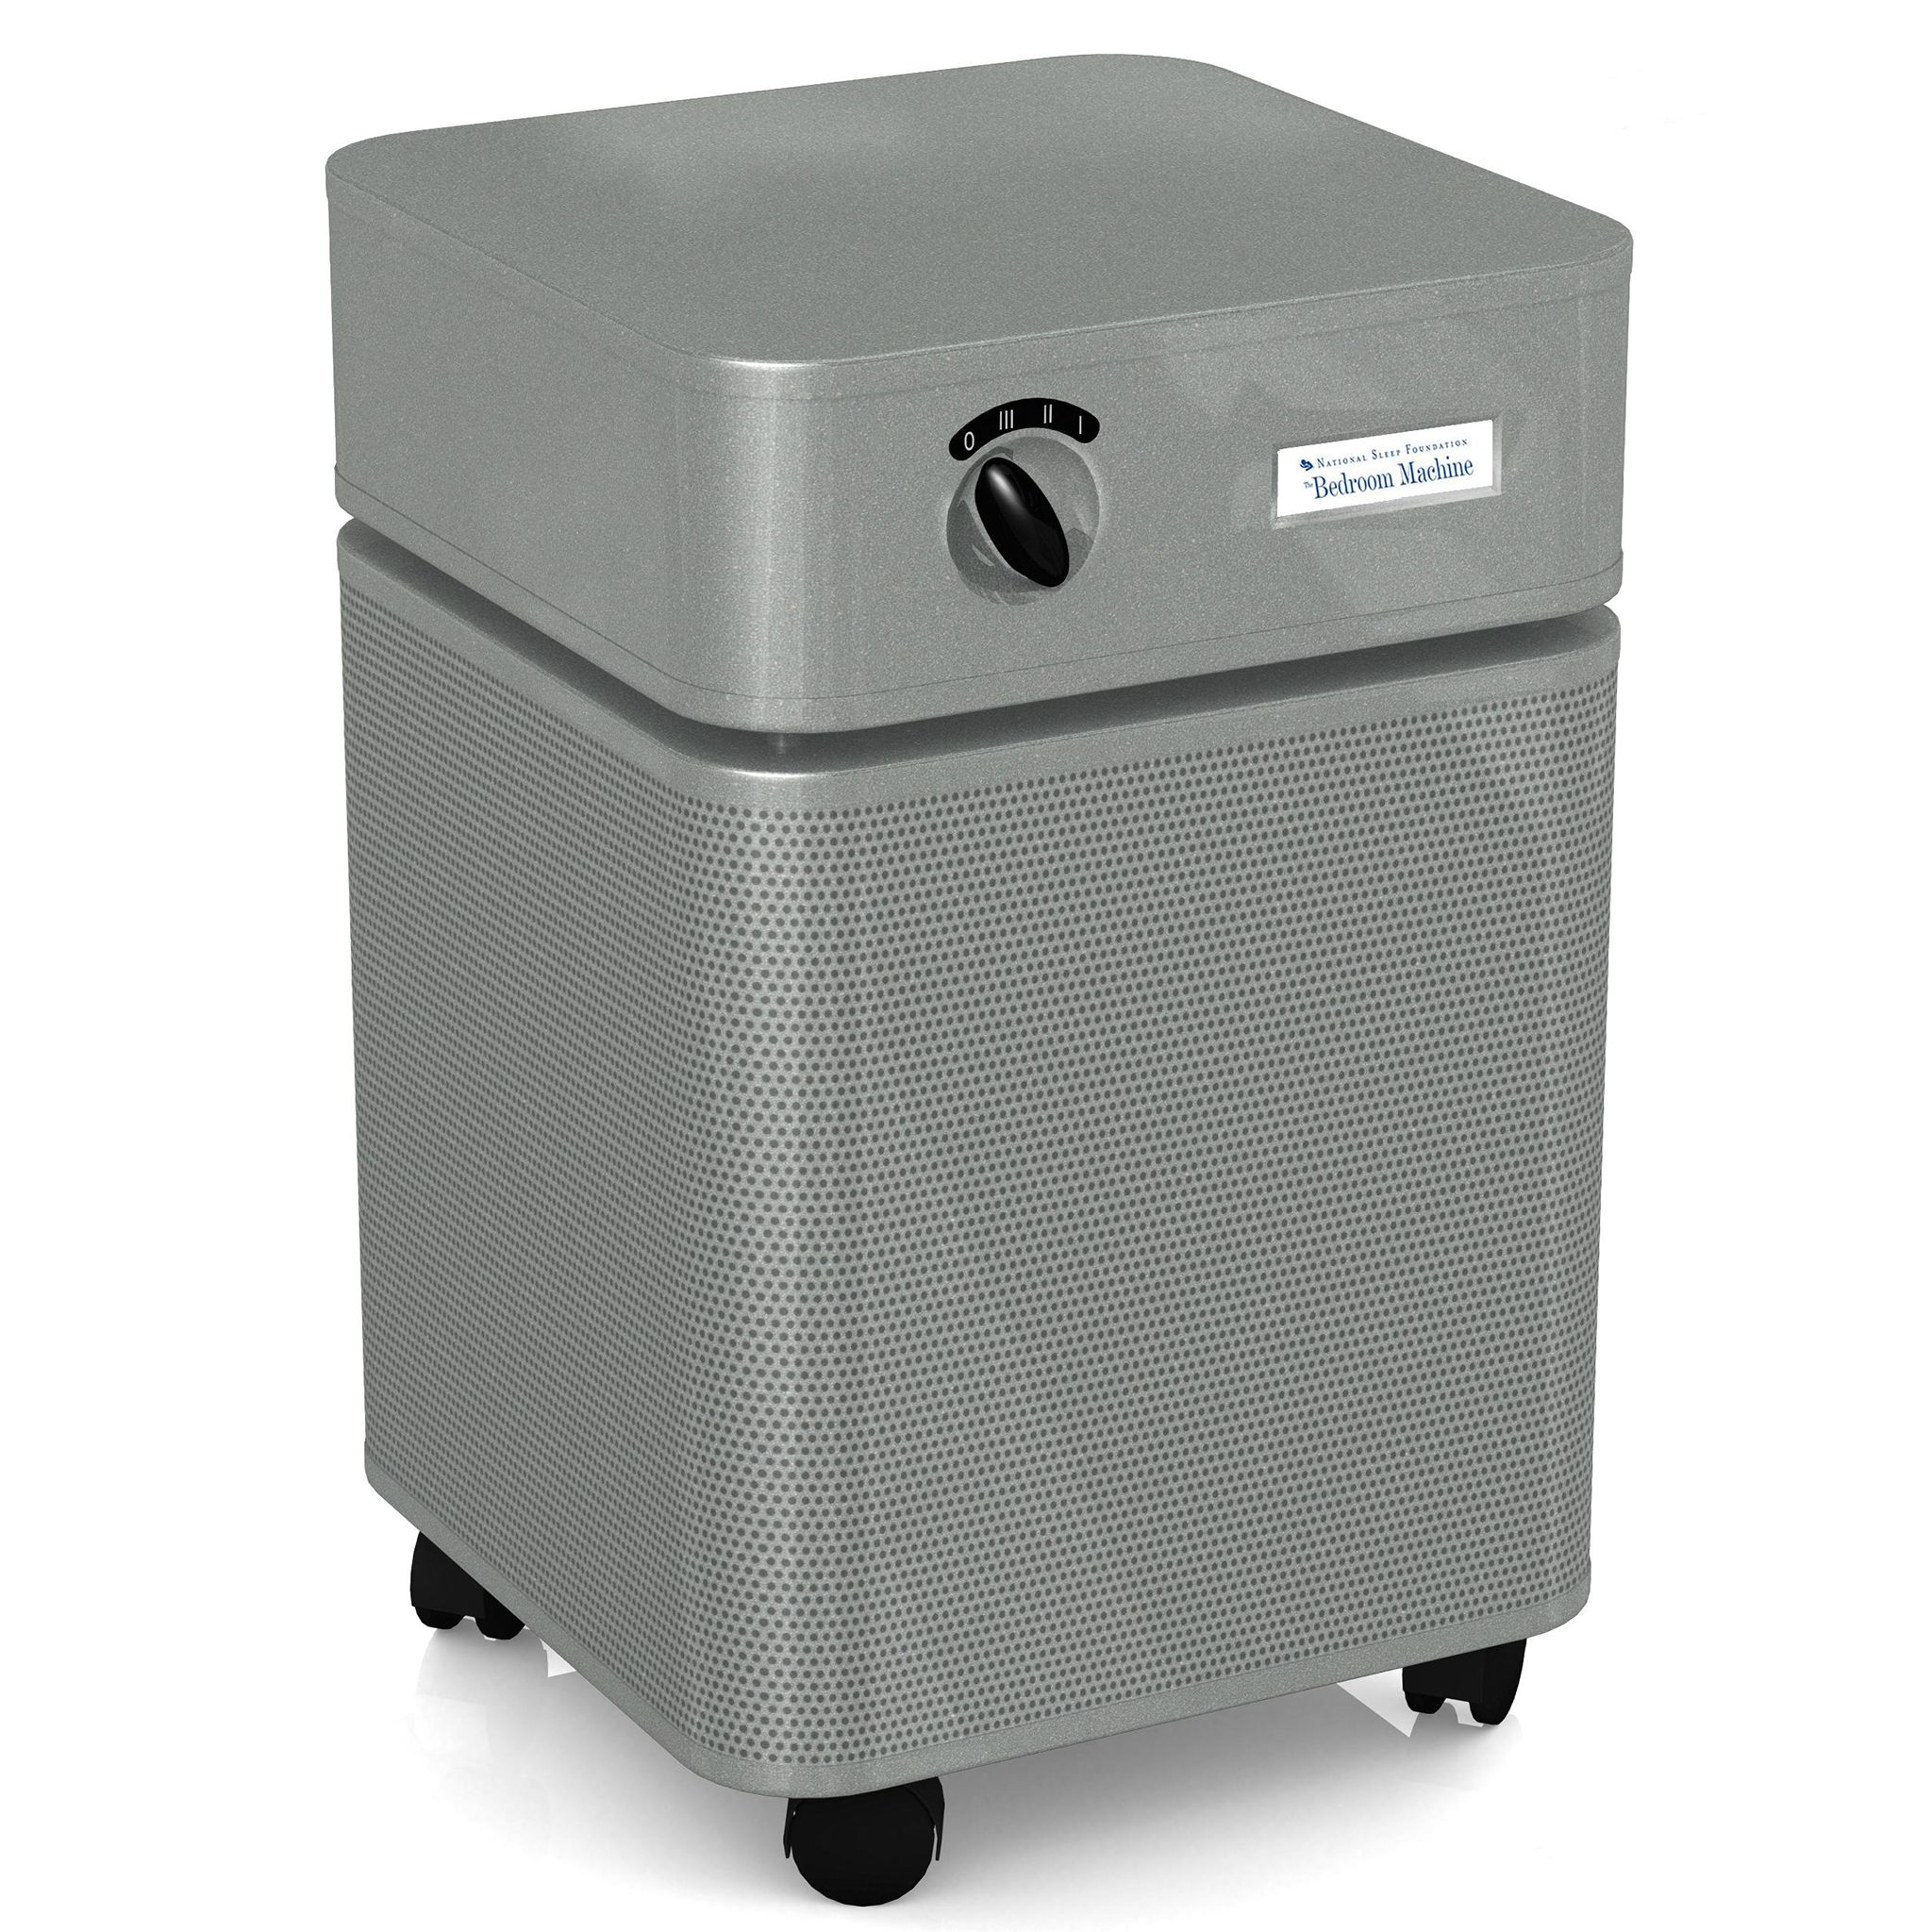 Austin Air Bedroom Machine in Silver Air purifier